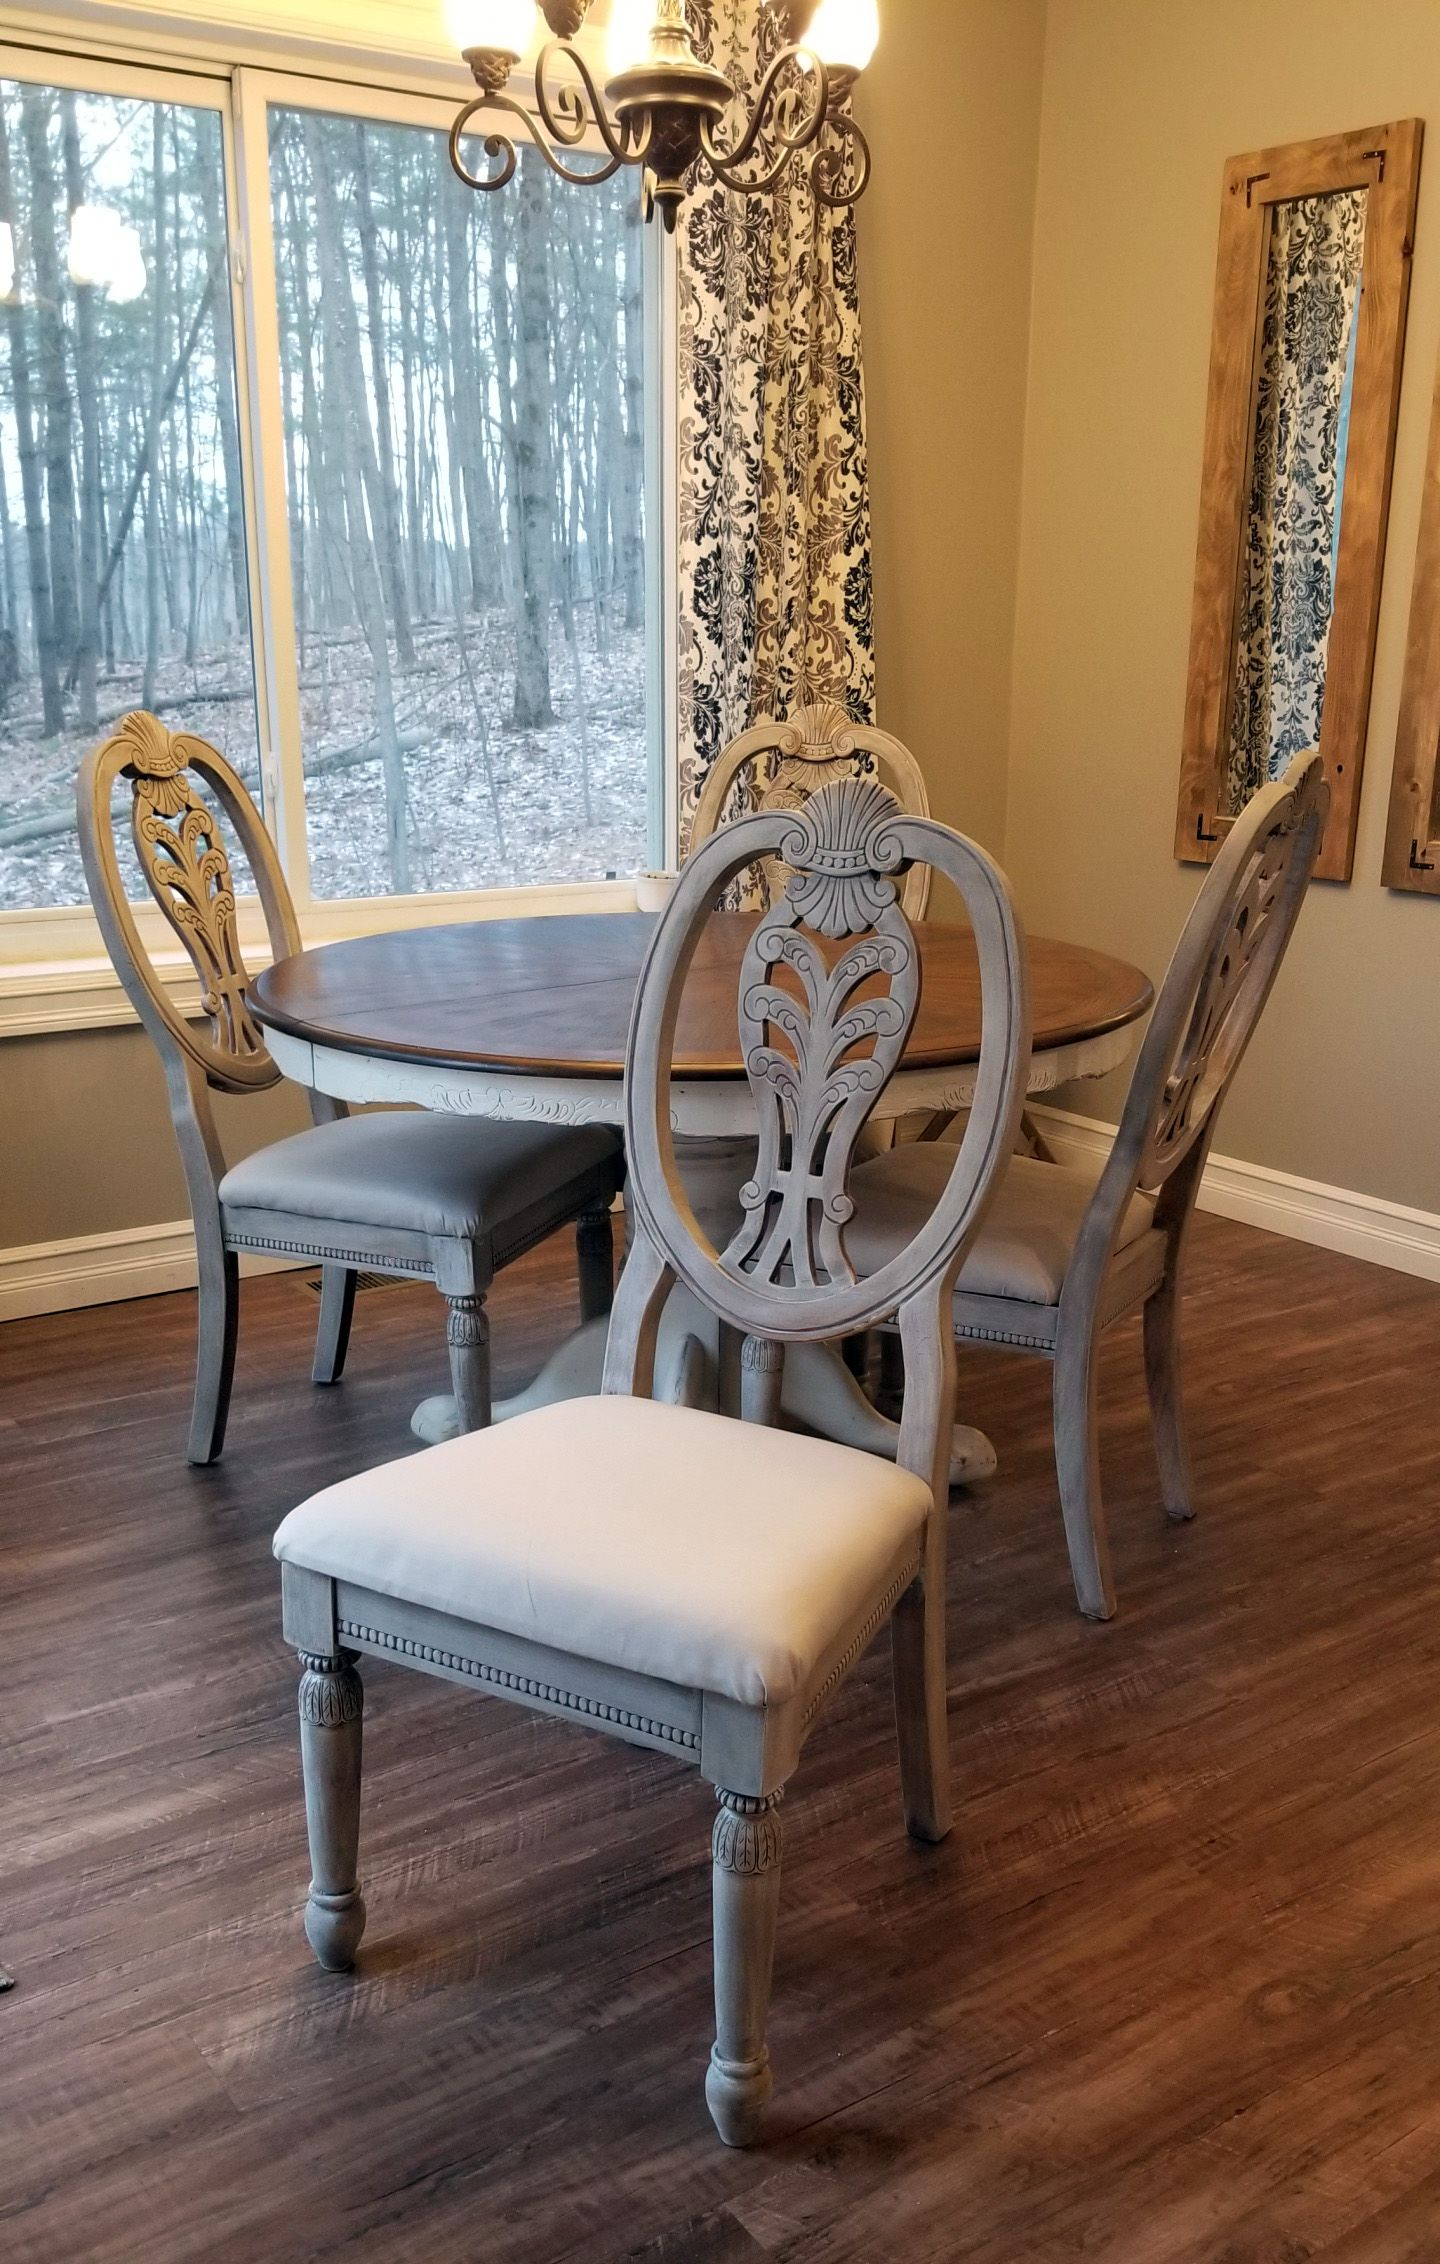 Diy Whitewashed Chair Dining Room Chairs Makeover Whitewashed Chairs Dining Chair Makeover